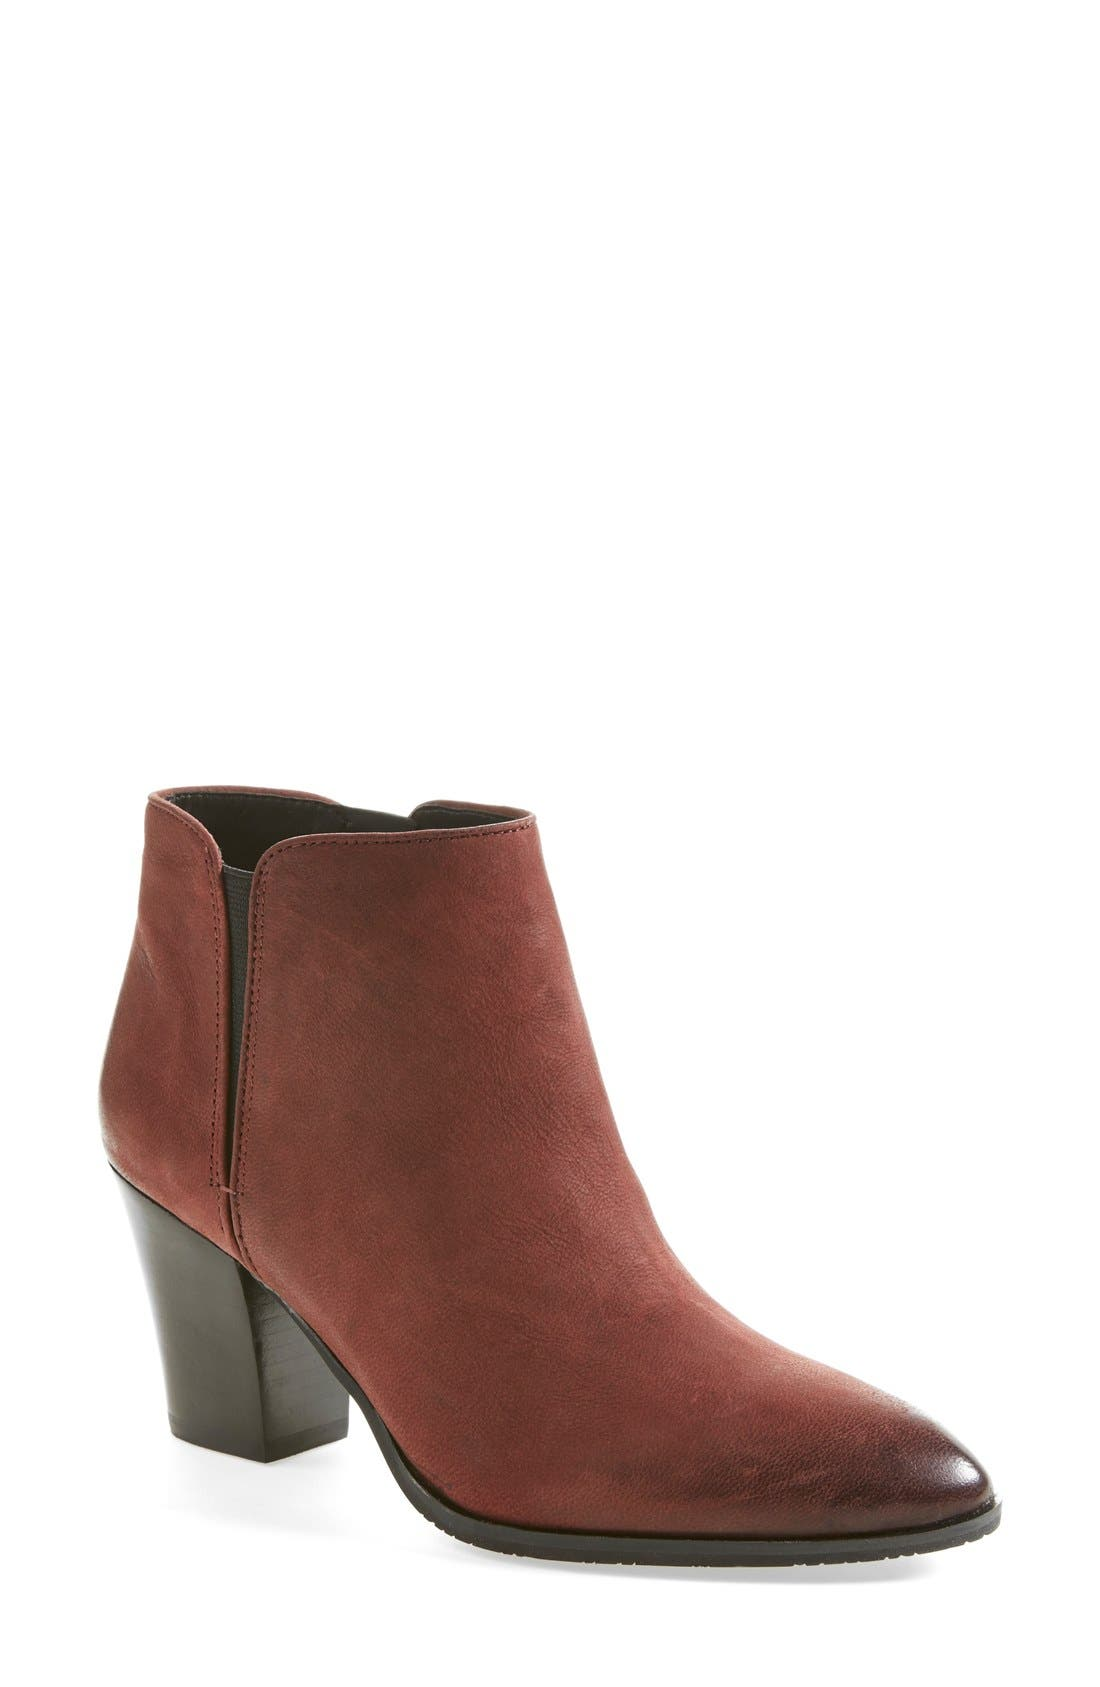 Alternate Image 1 Selected - Franco Sarto 'Agenda' Leather Bootie (Women)